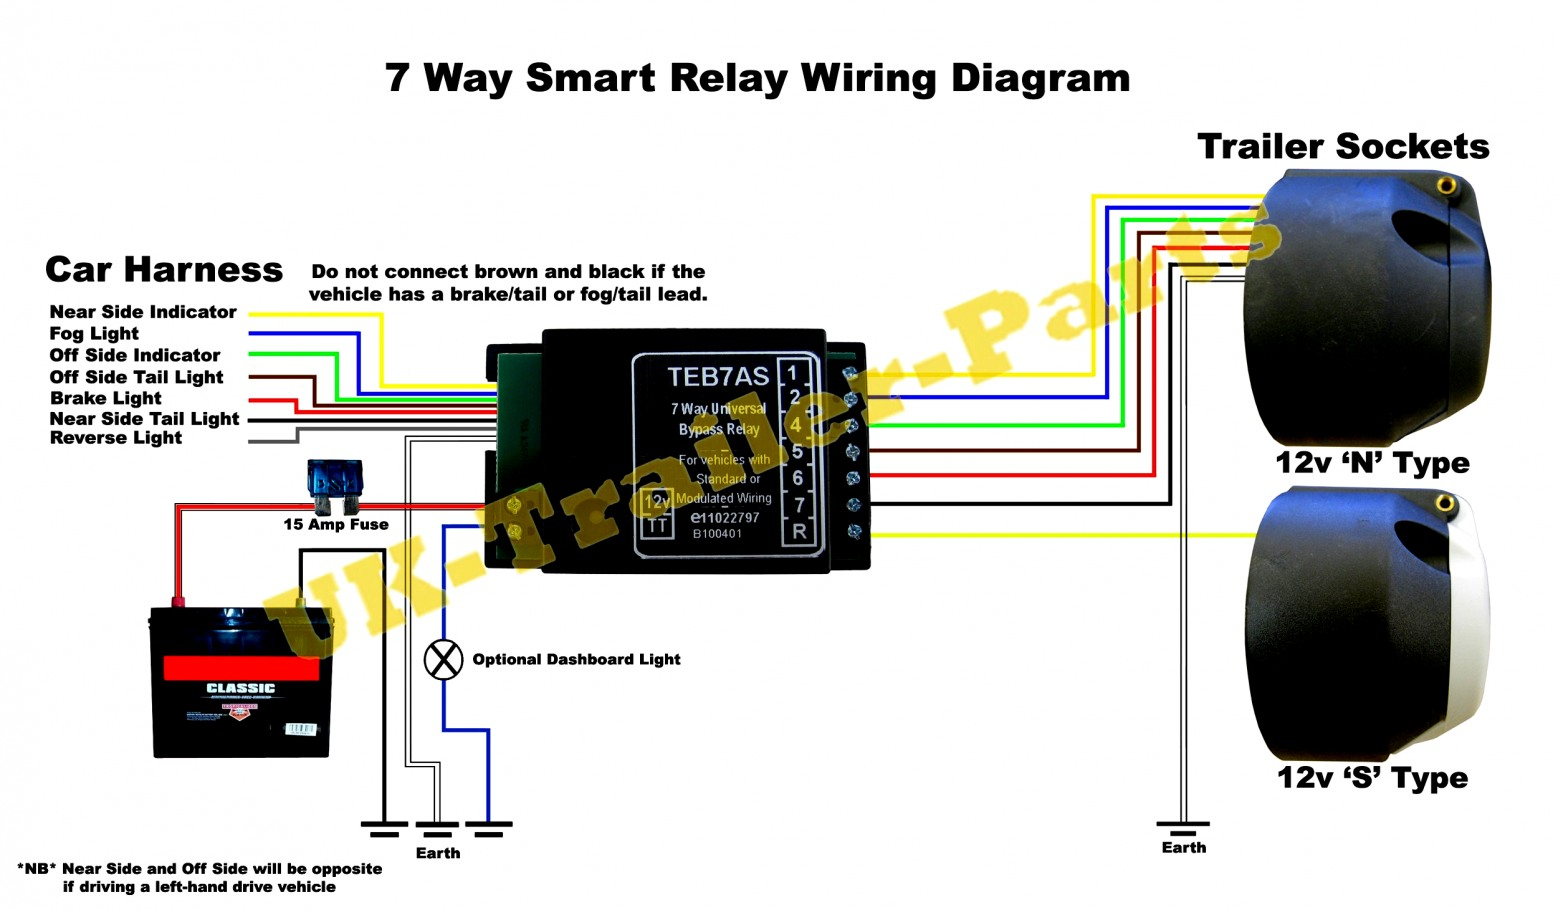 Trend Of Towing Socket Wiring Diagram 13 Pin Data - Trailer Socket Wiring Diagram